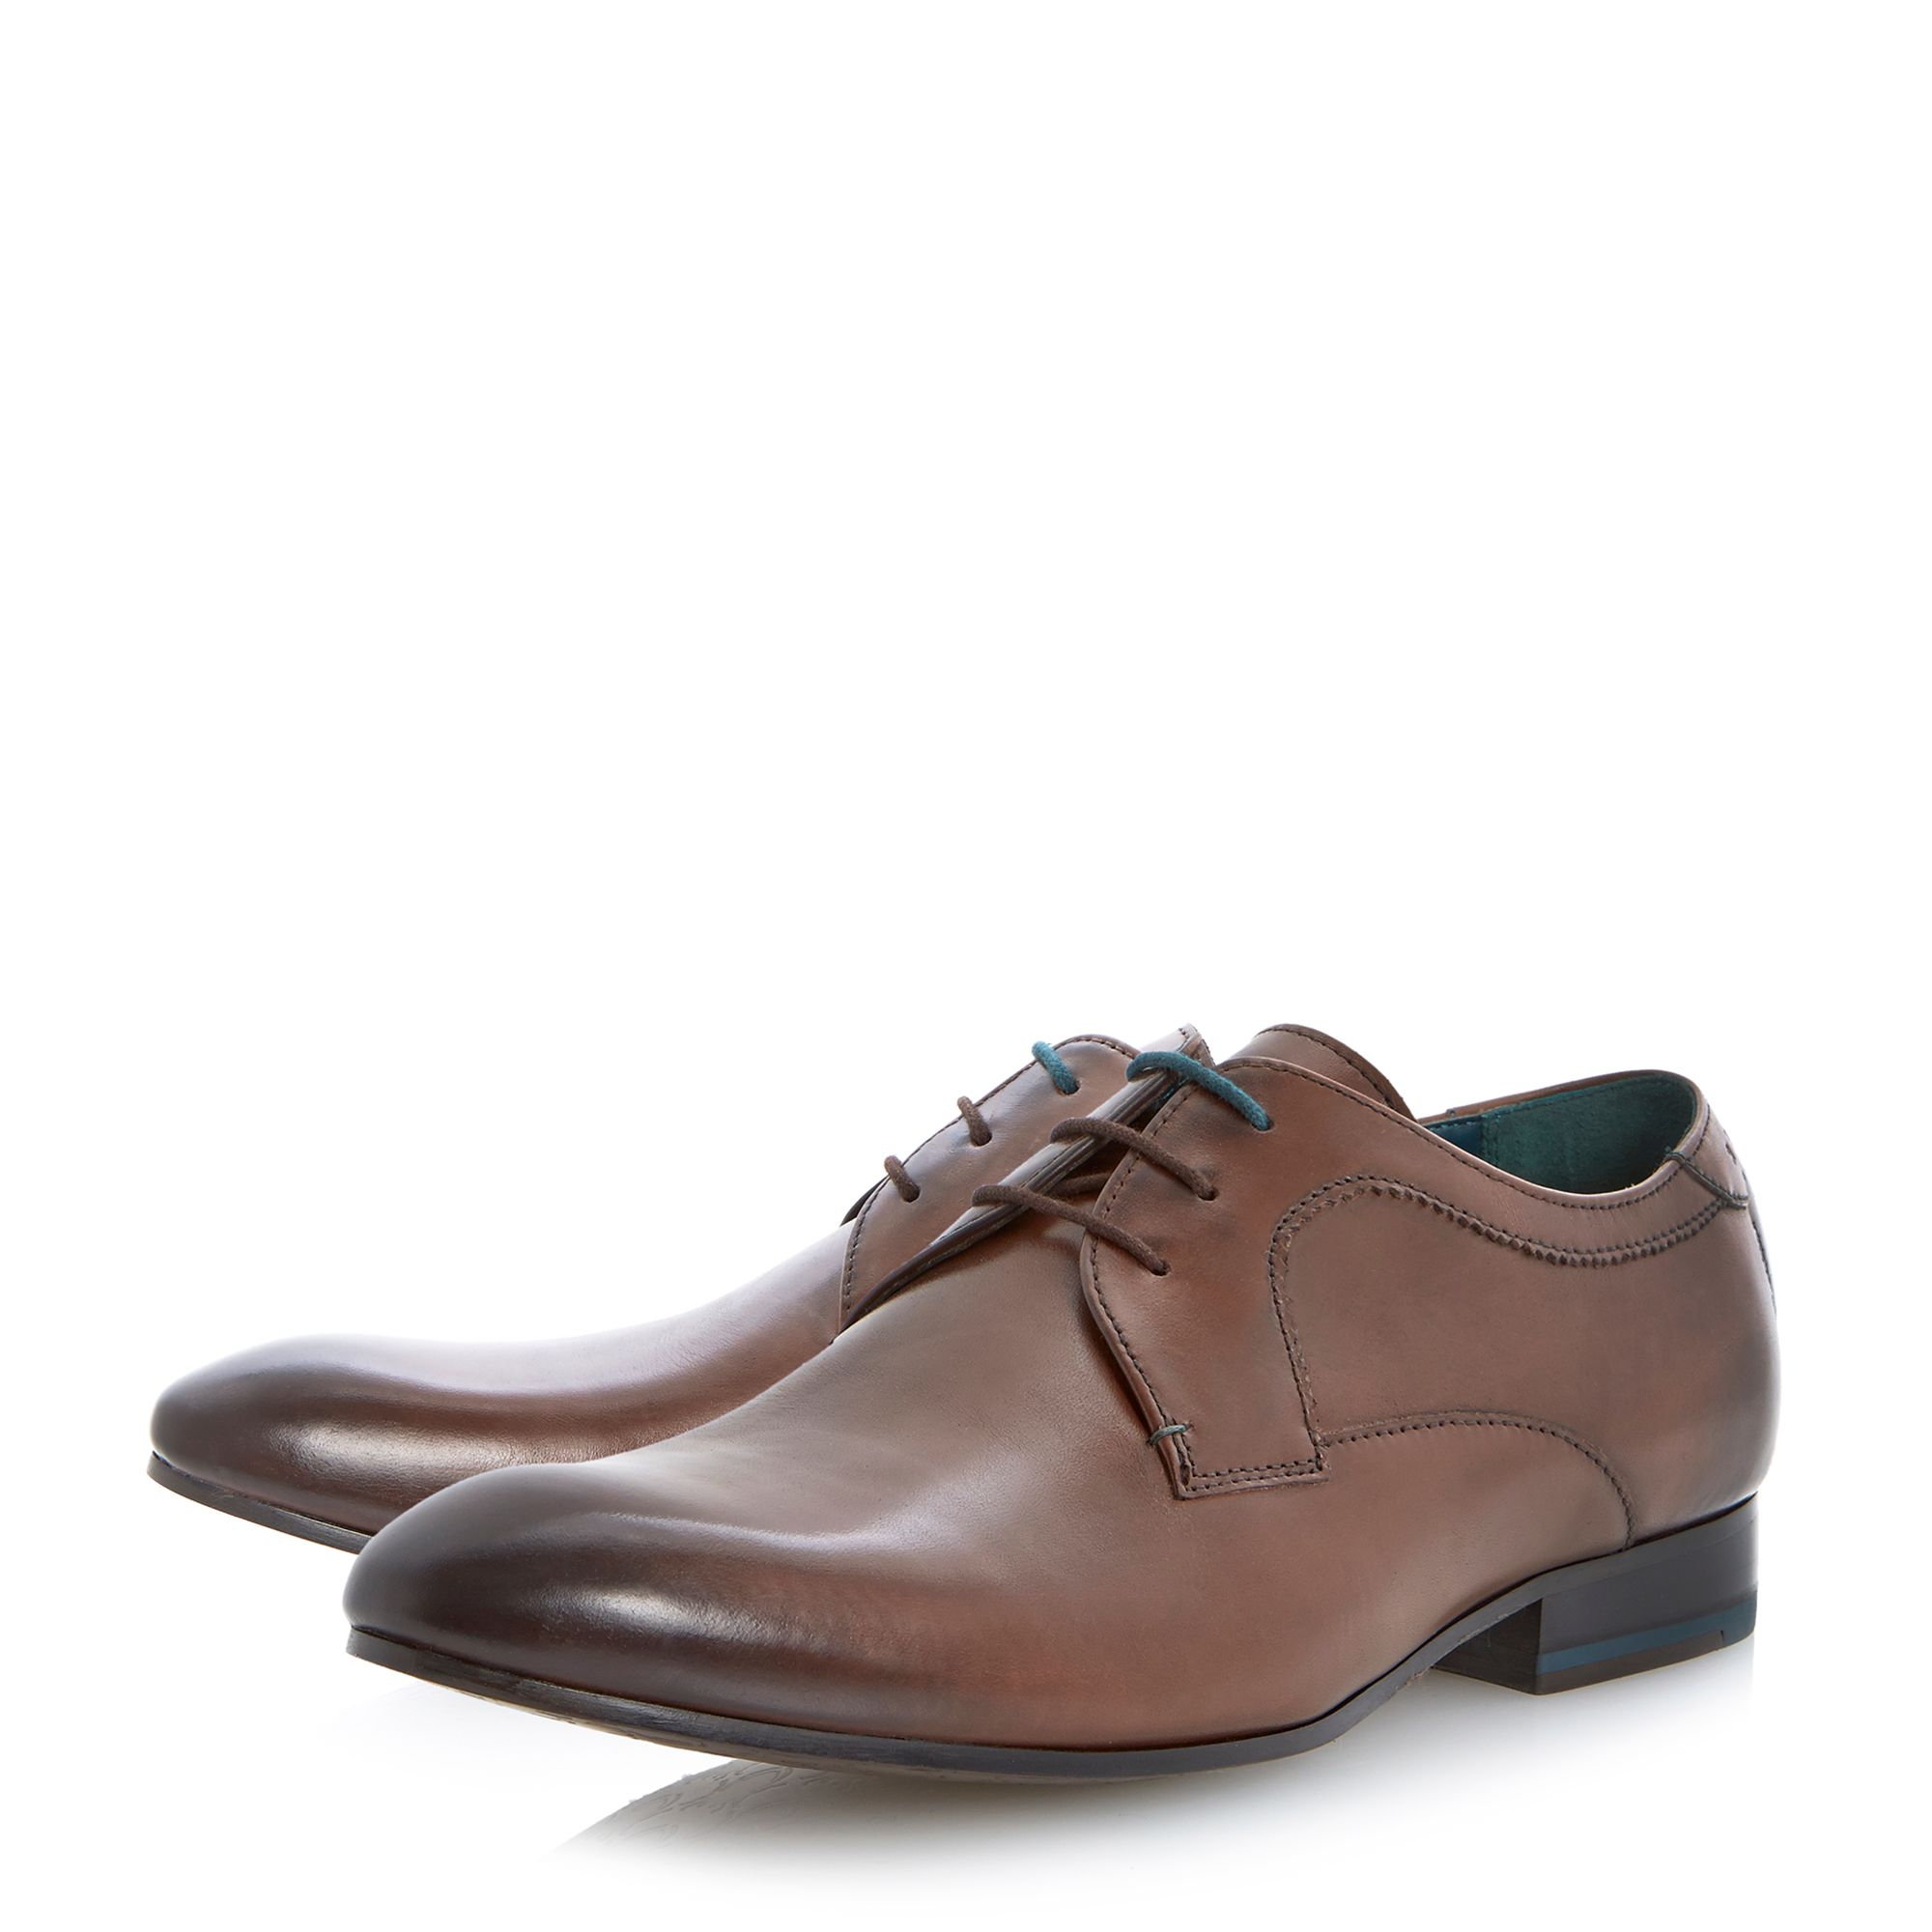 Leam lace up gibson shoes